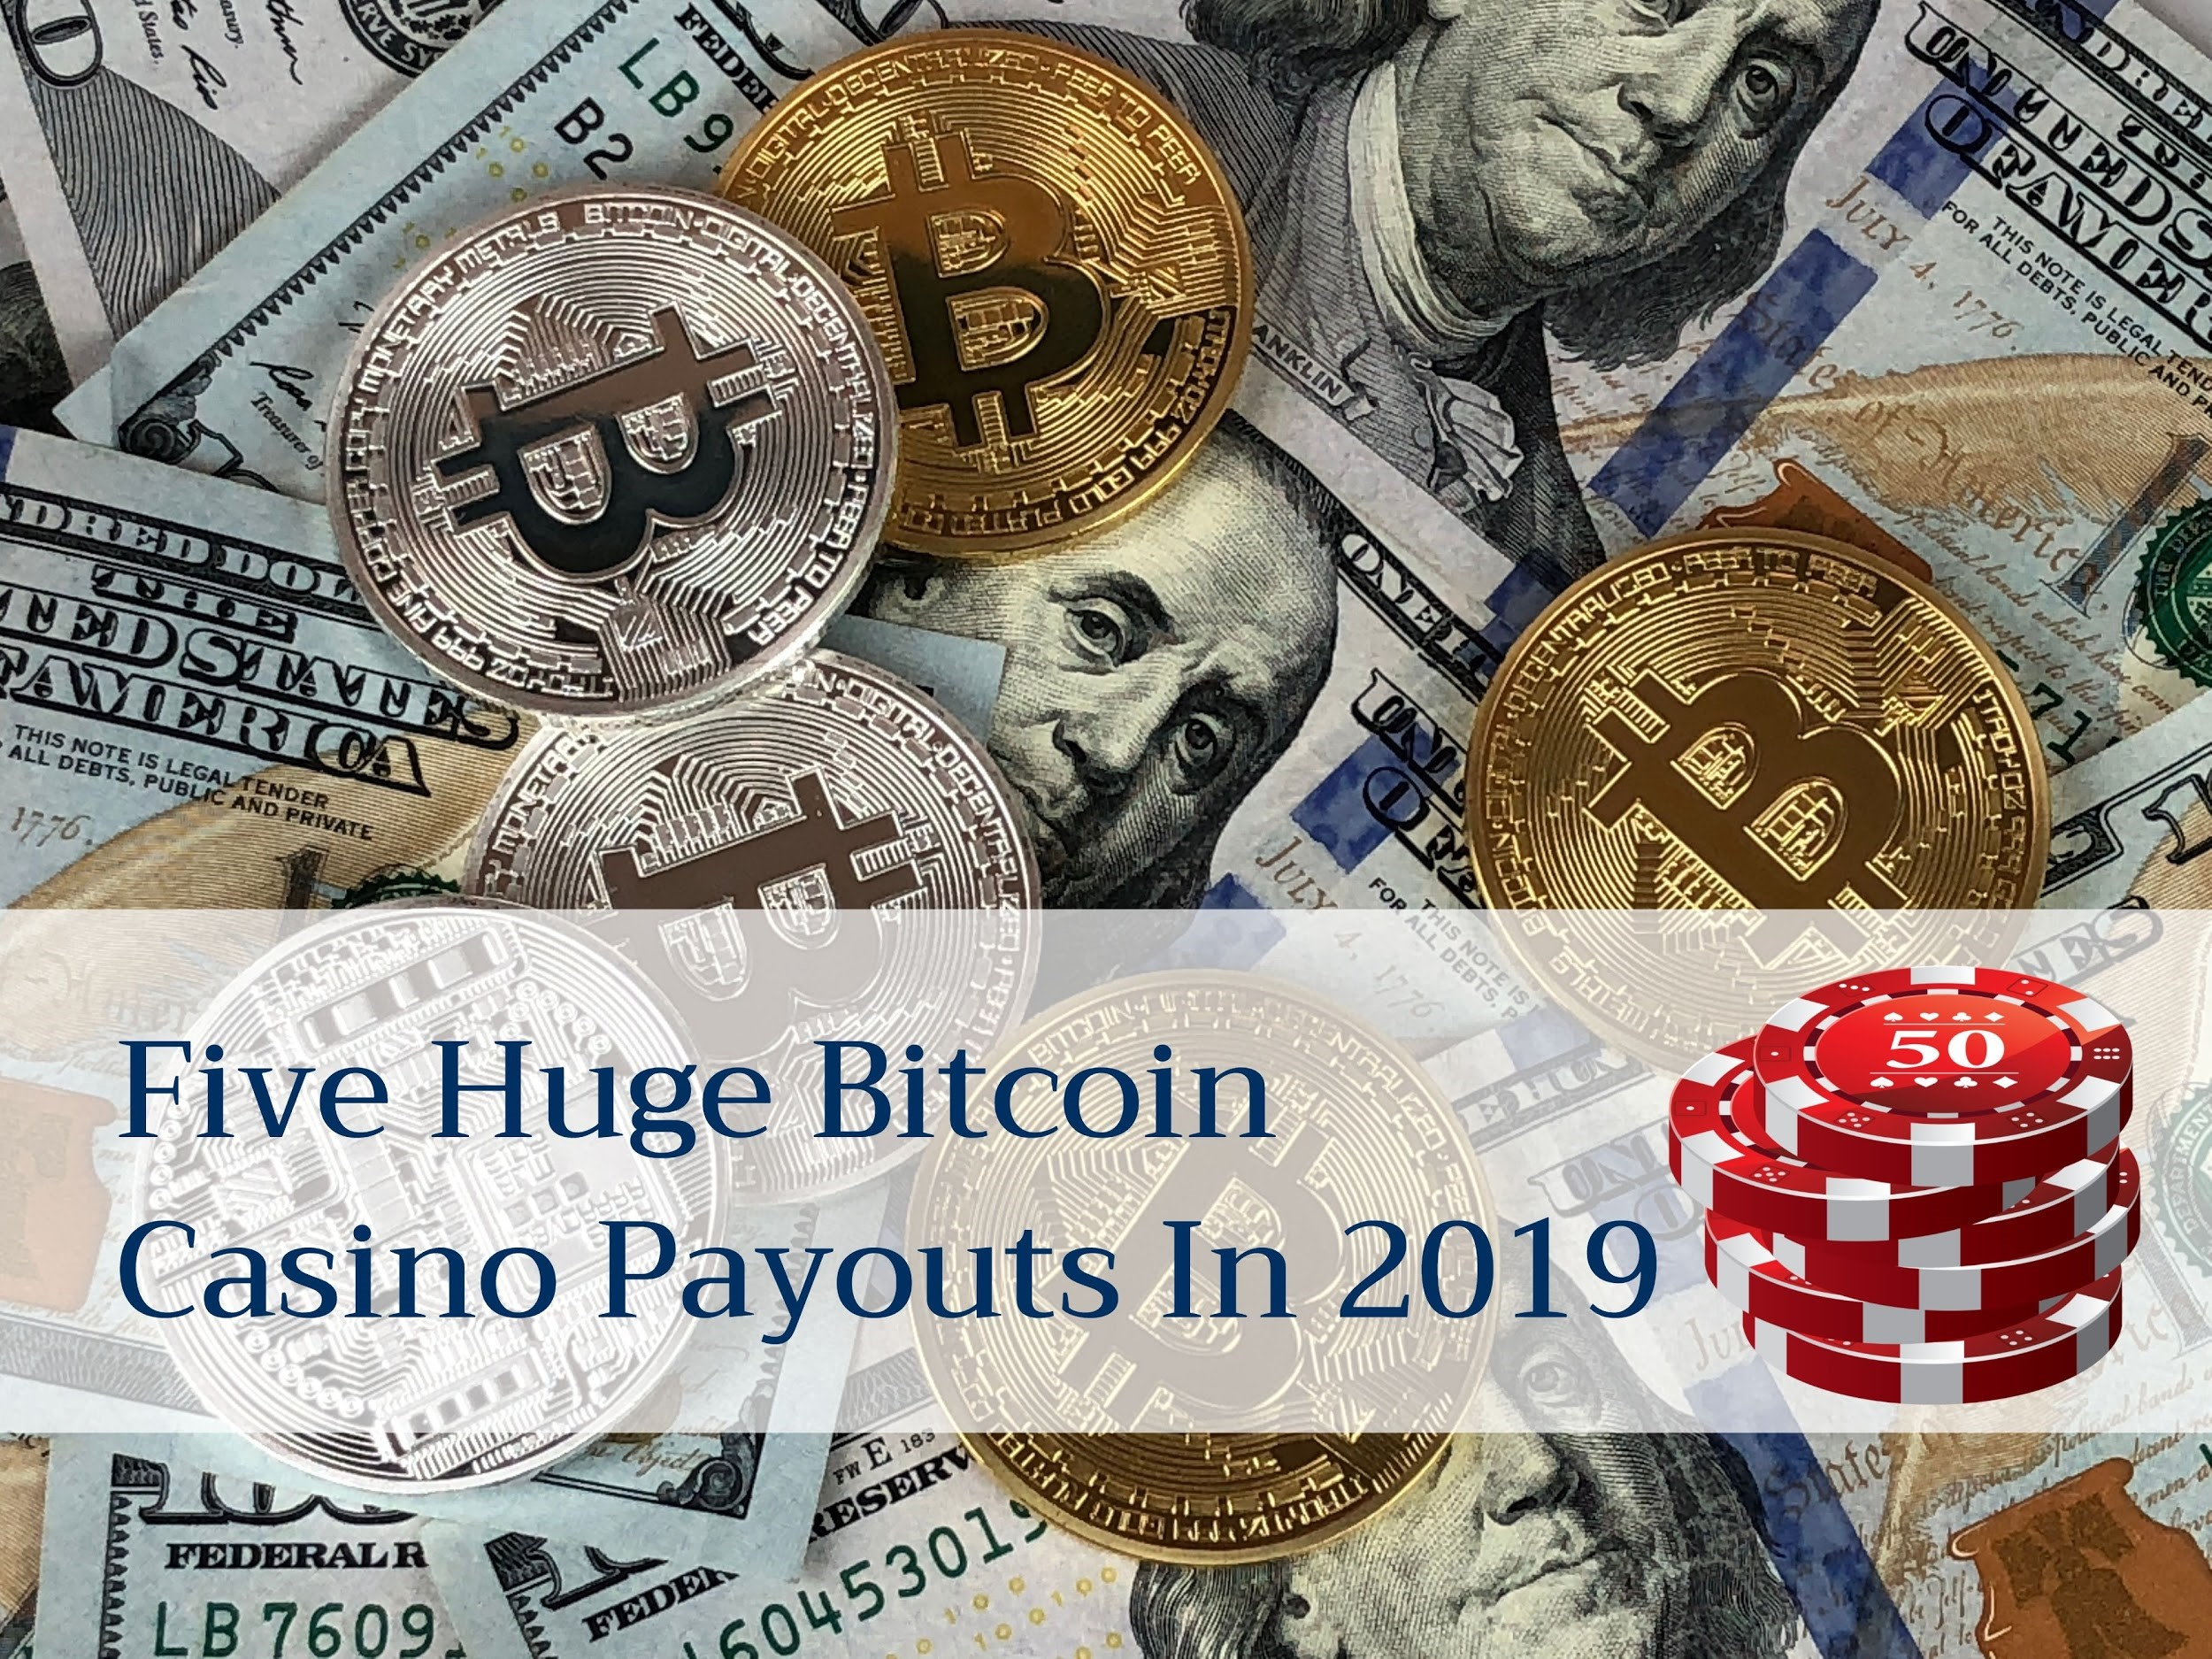 Five Huge Bitcoin Casino Payouts In 2019